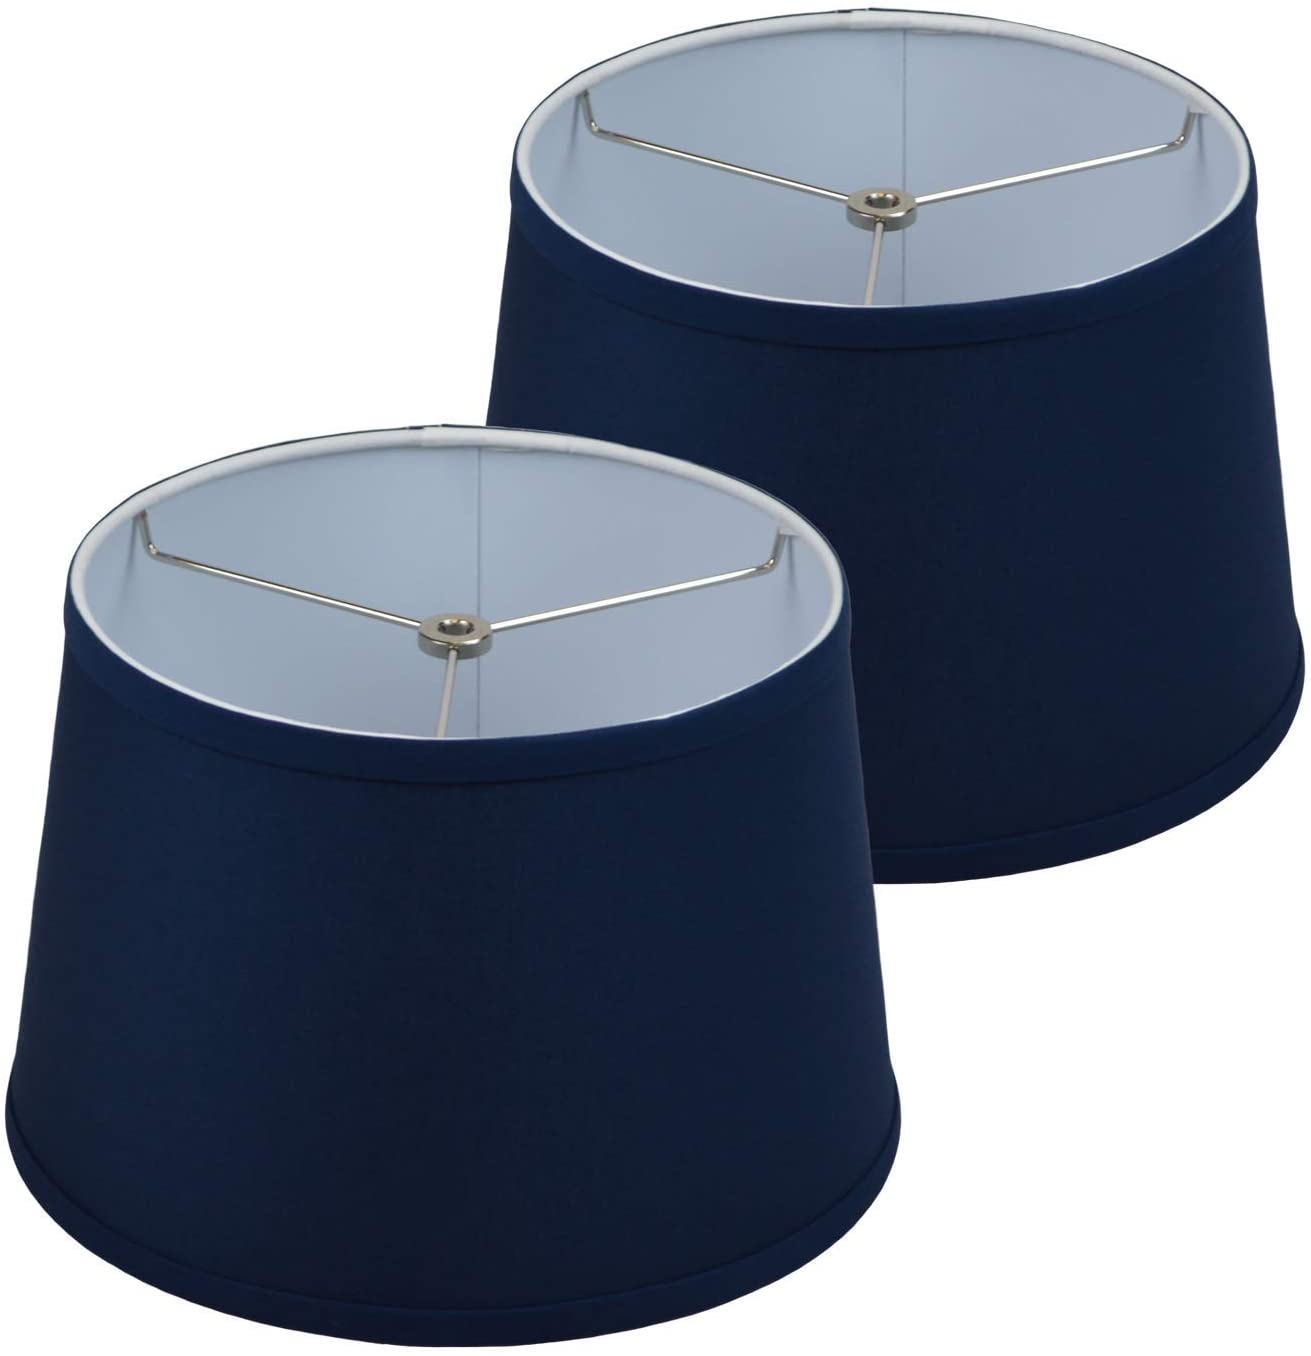 Ranking integrated 1st place FenchelShades.com Set of 2 Lampshades 10